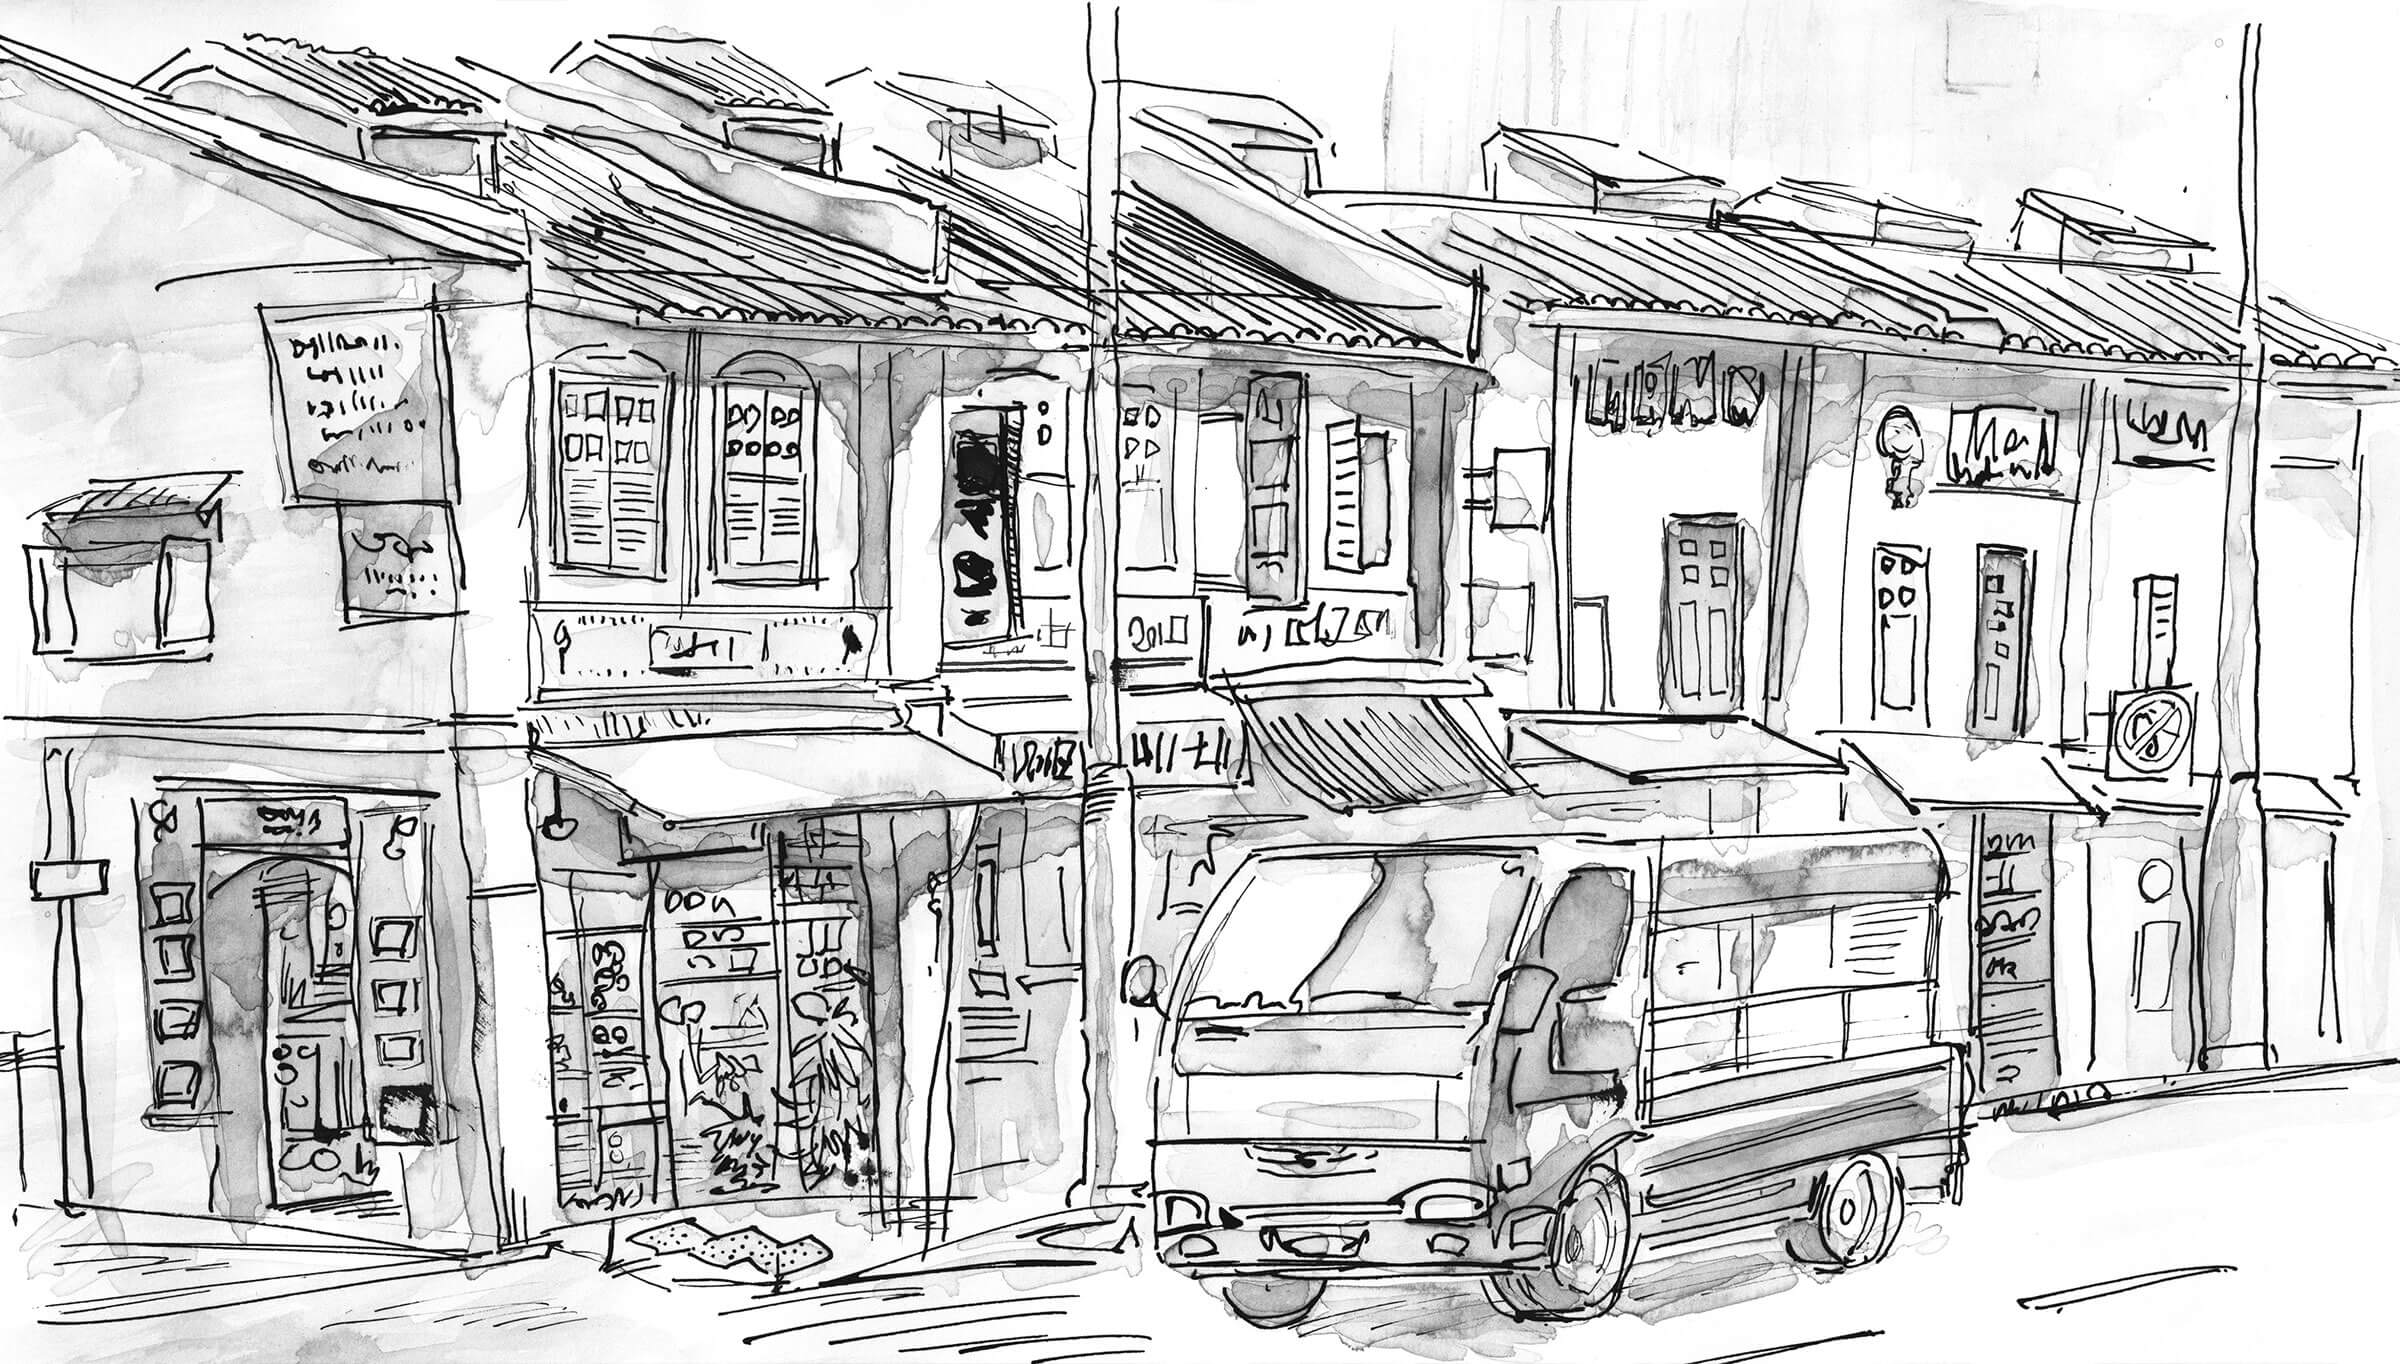 Black-and-white sketch of a van parked next to low-rise buildings.